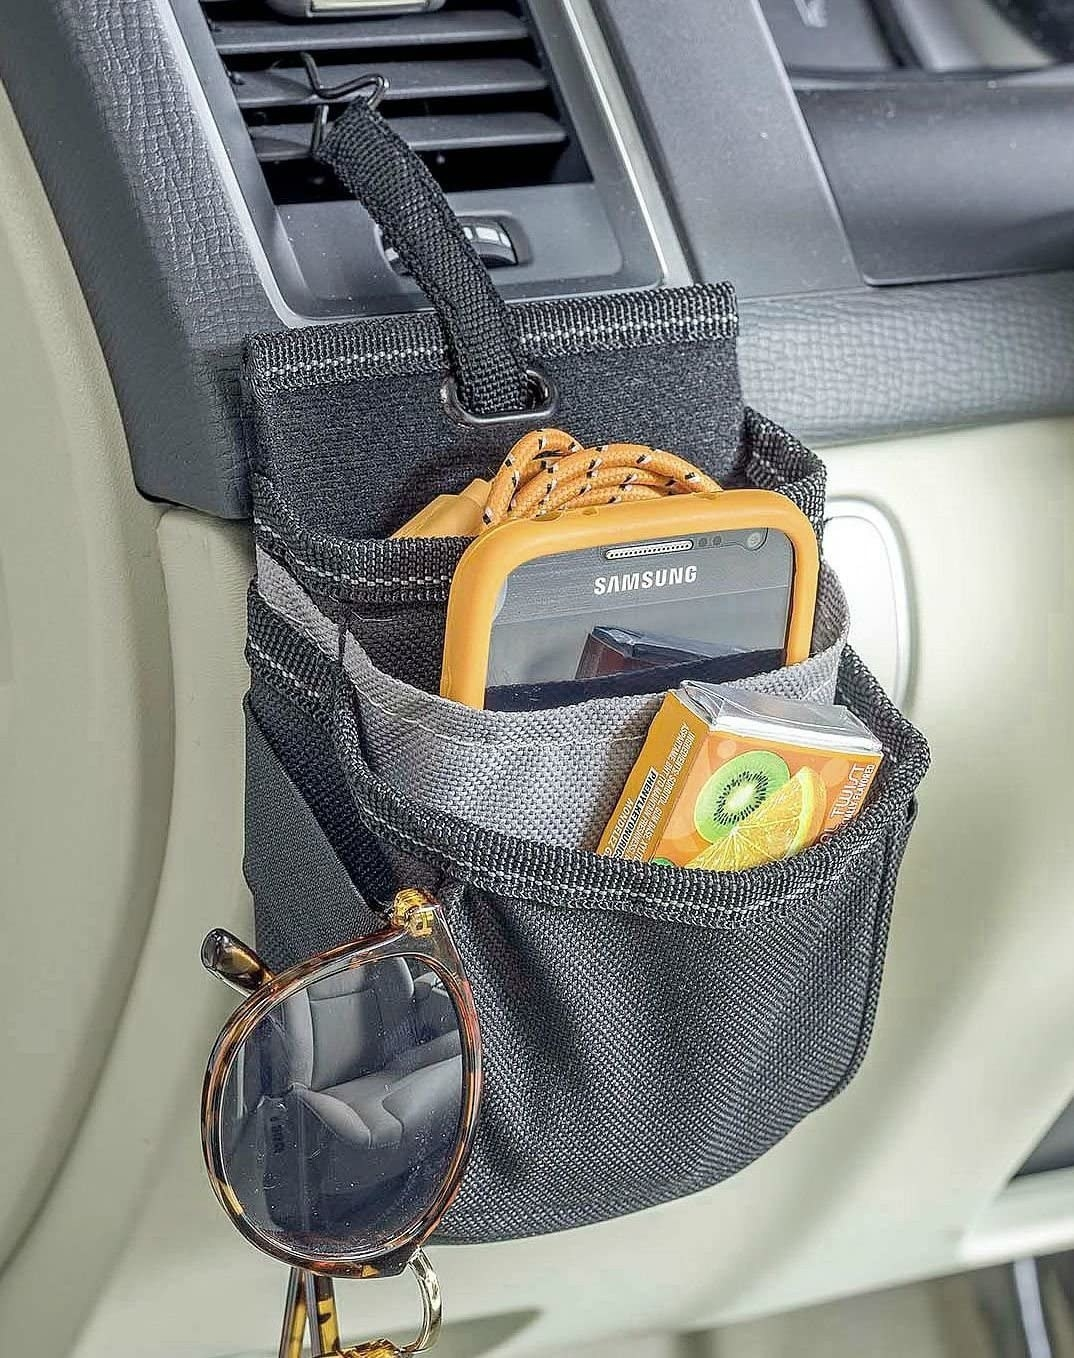 pocketed pouch-like organizer hanging from a car vent